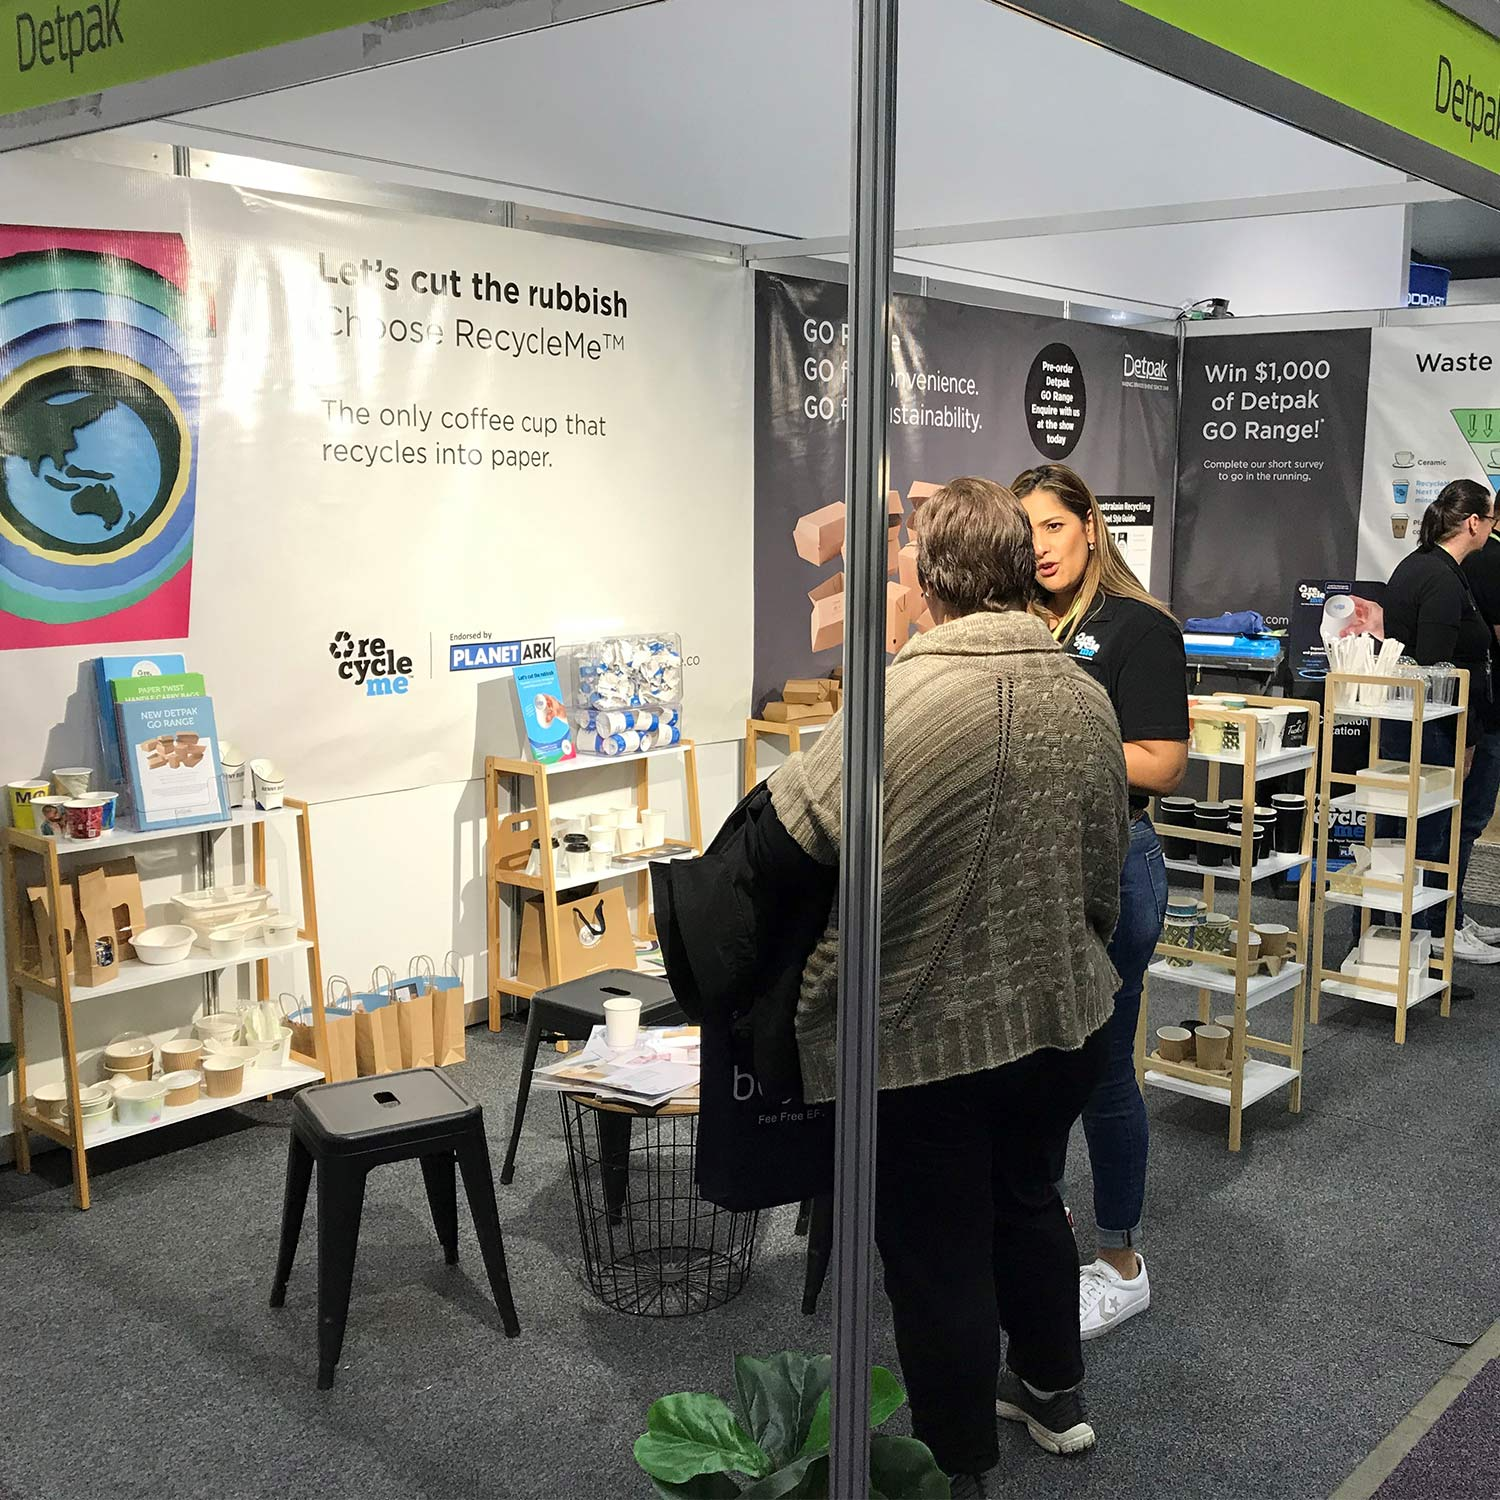 Image of stand at FoodService Australia with RecycleMe banner in background